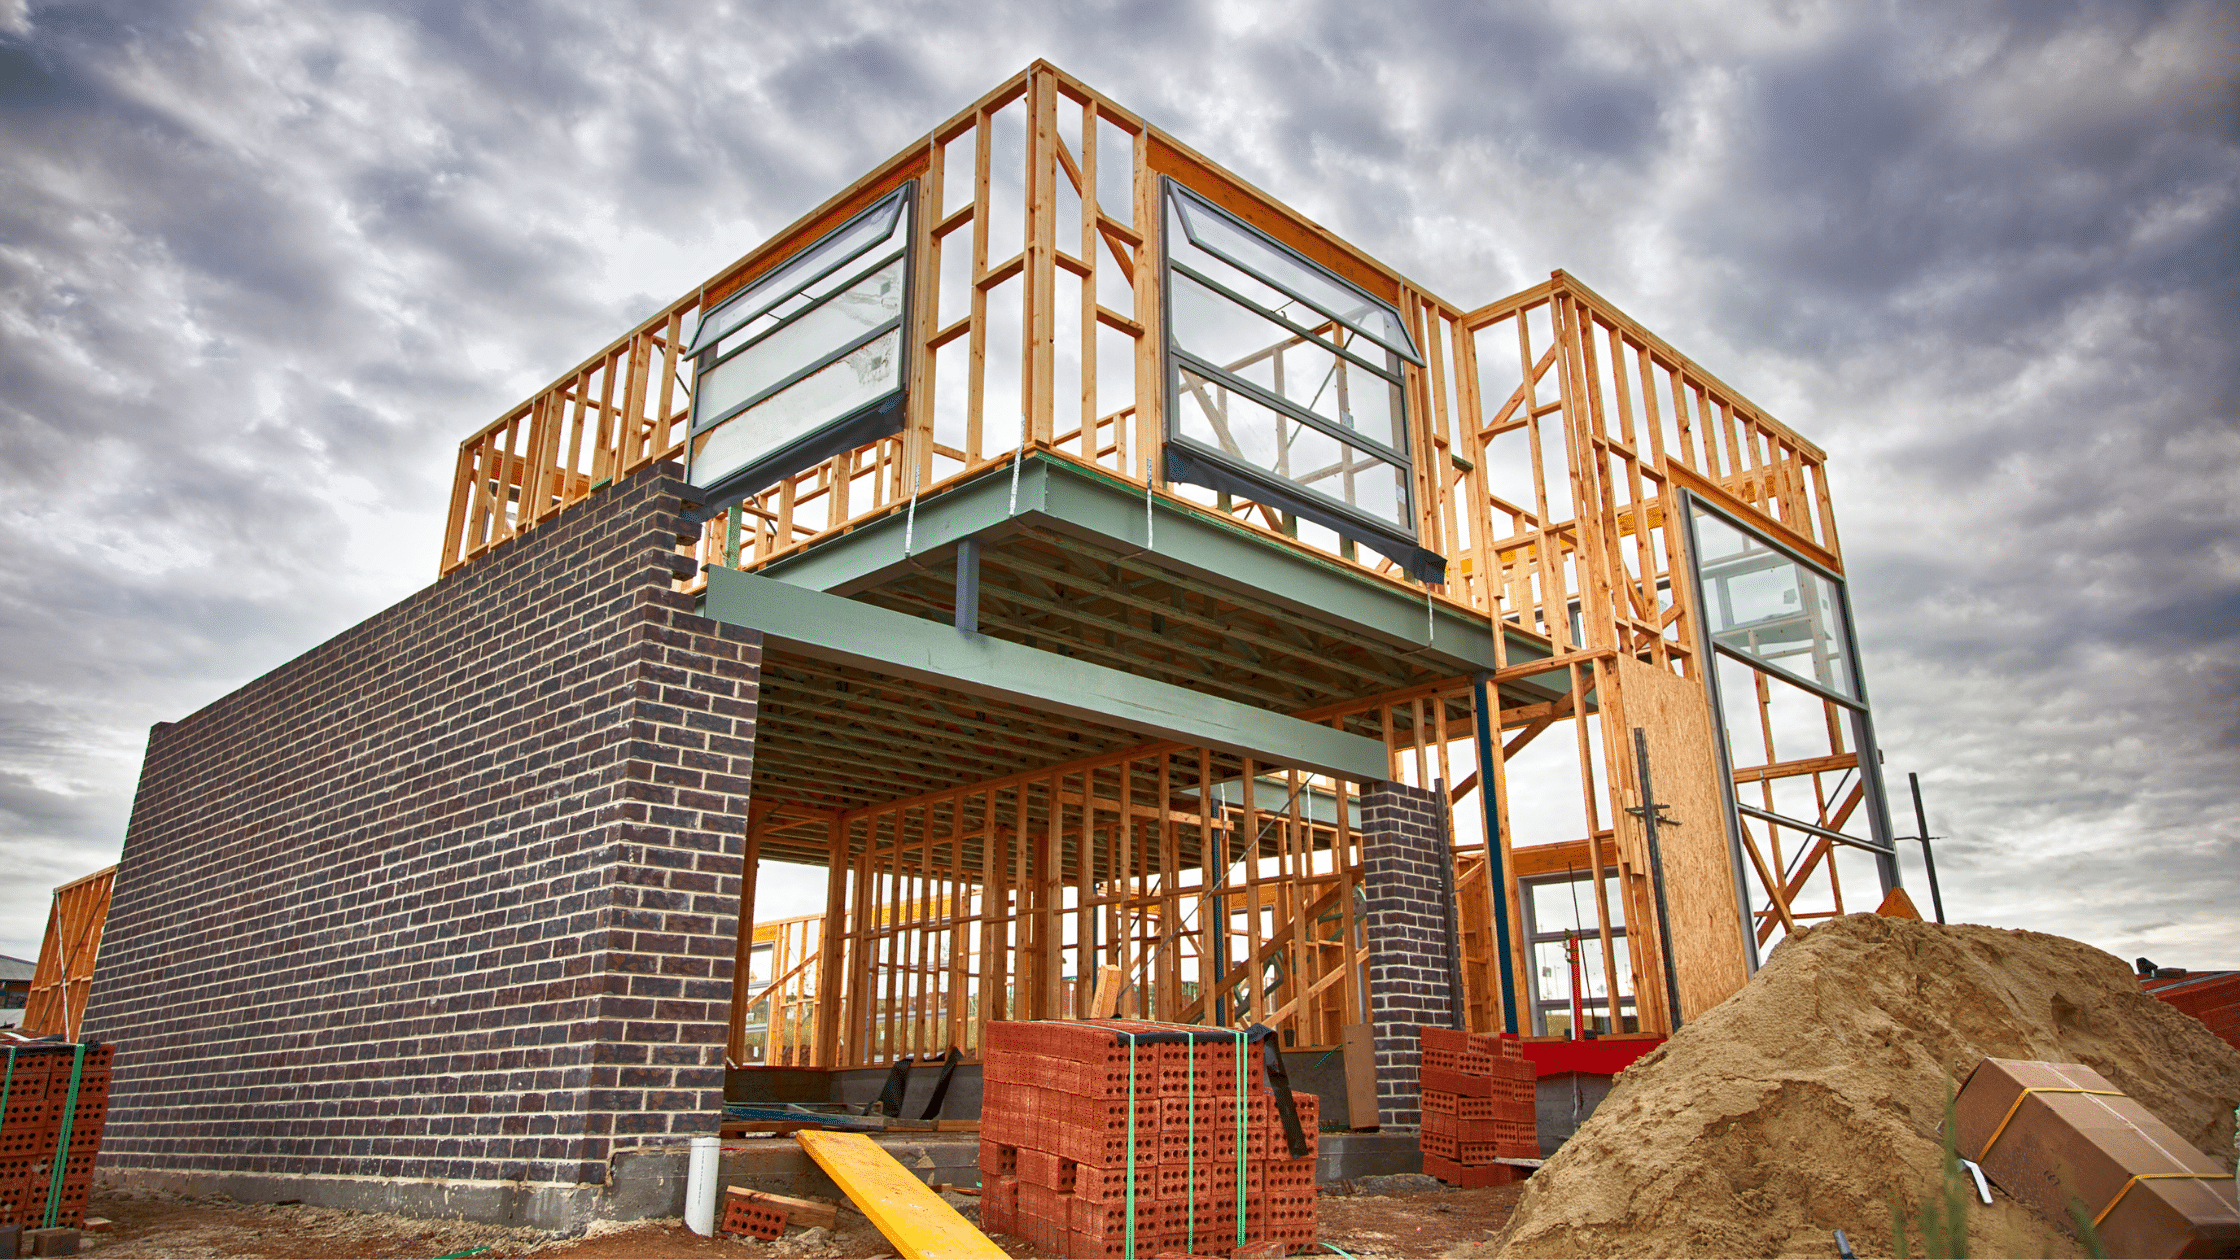 The Most Common Causes of Construction Litigation